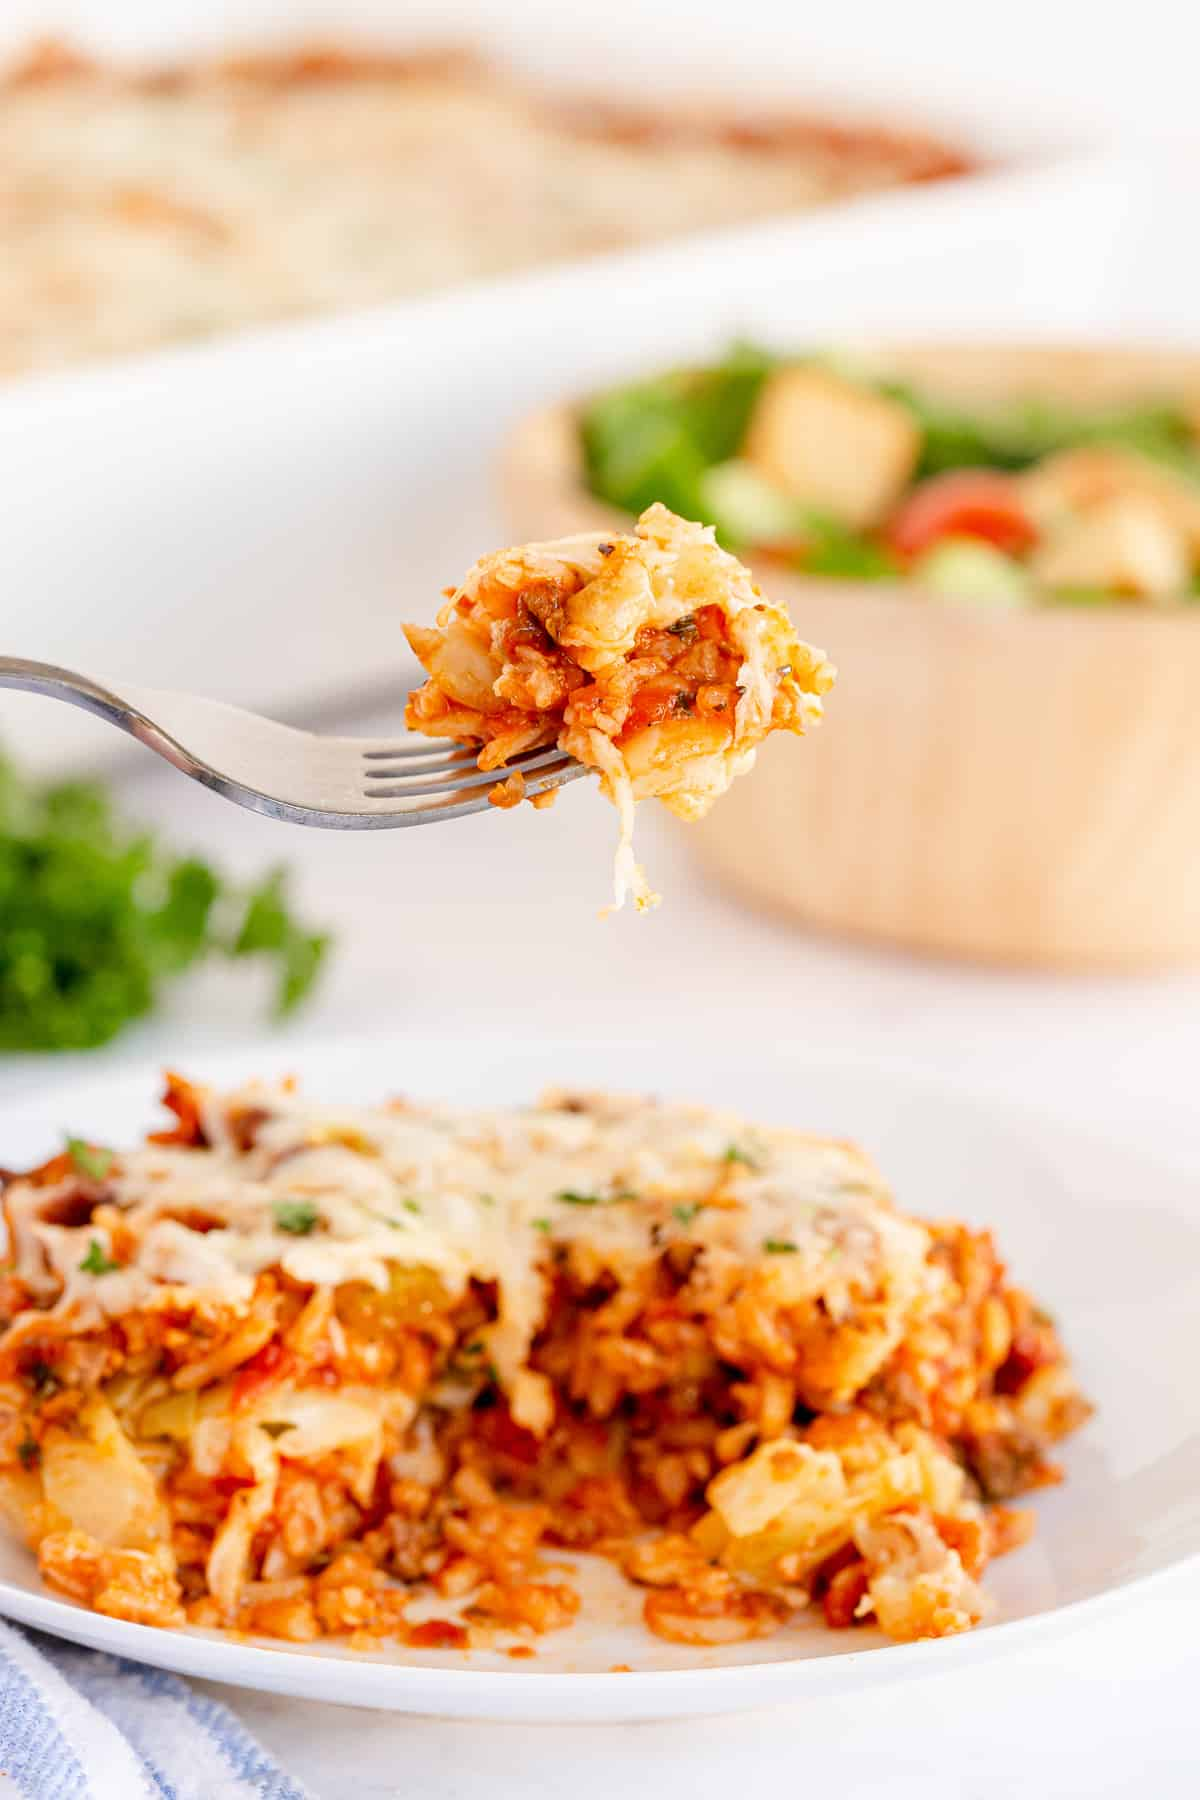 A fork lifts a bite of cabbage roll casserole from a white plate.